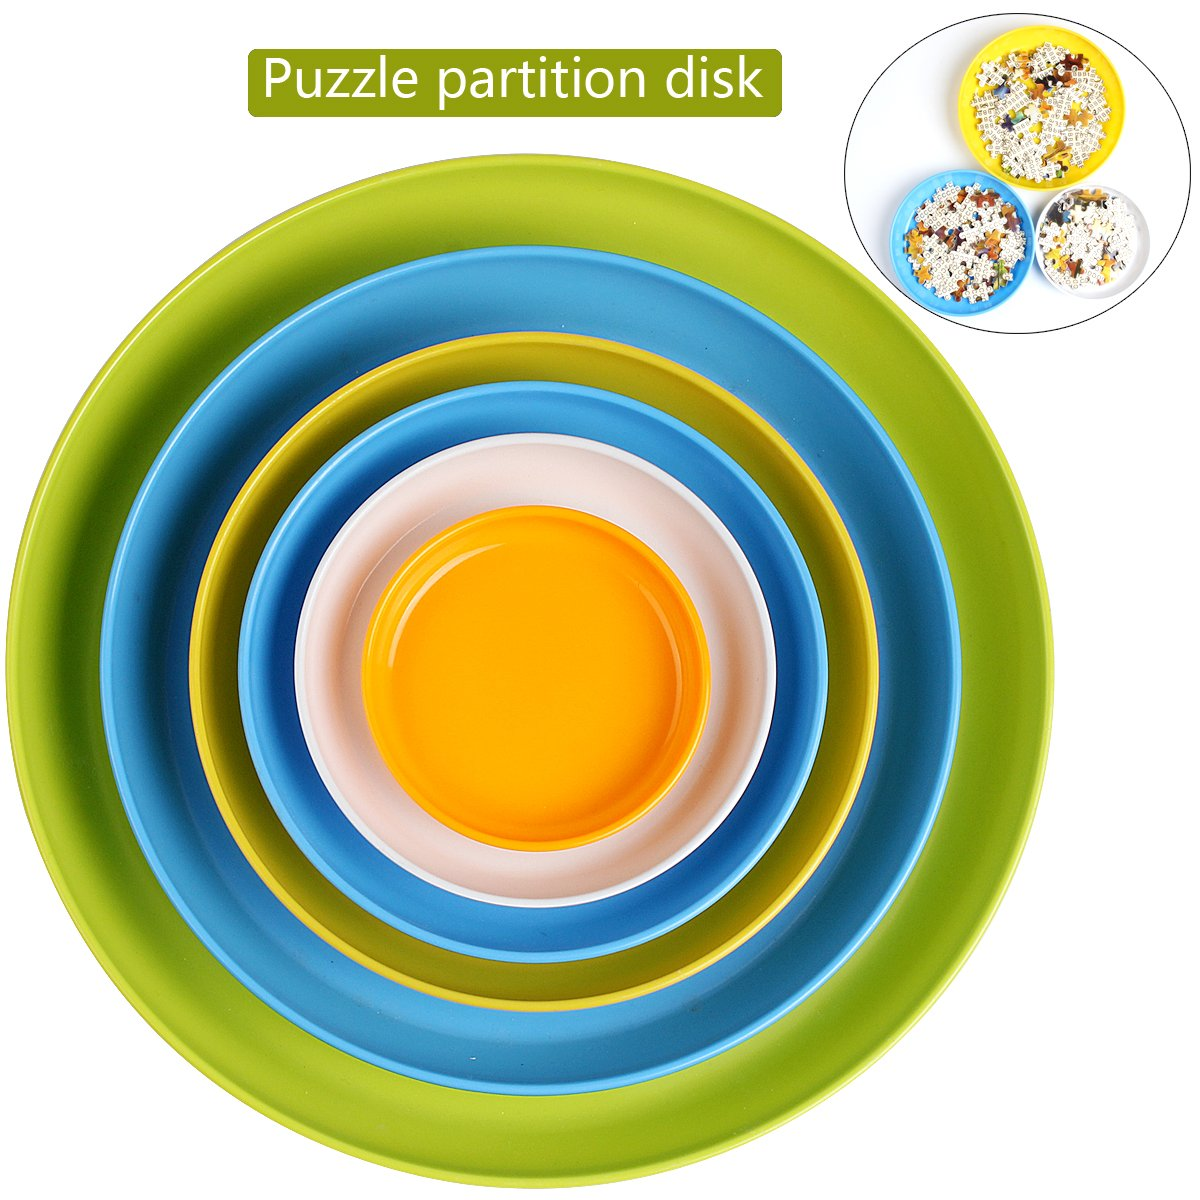 Puzzle Piece Sorter Partition Dish Ingooood Jigsaw Puzzle Storage Sorting Trays Jigsaw Puzzle Accessory Make Puzzle Easy to Play and Better to Save